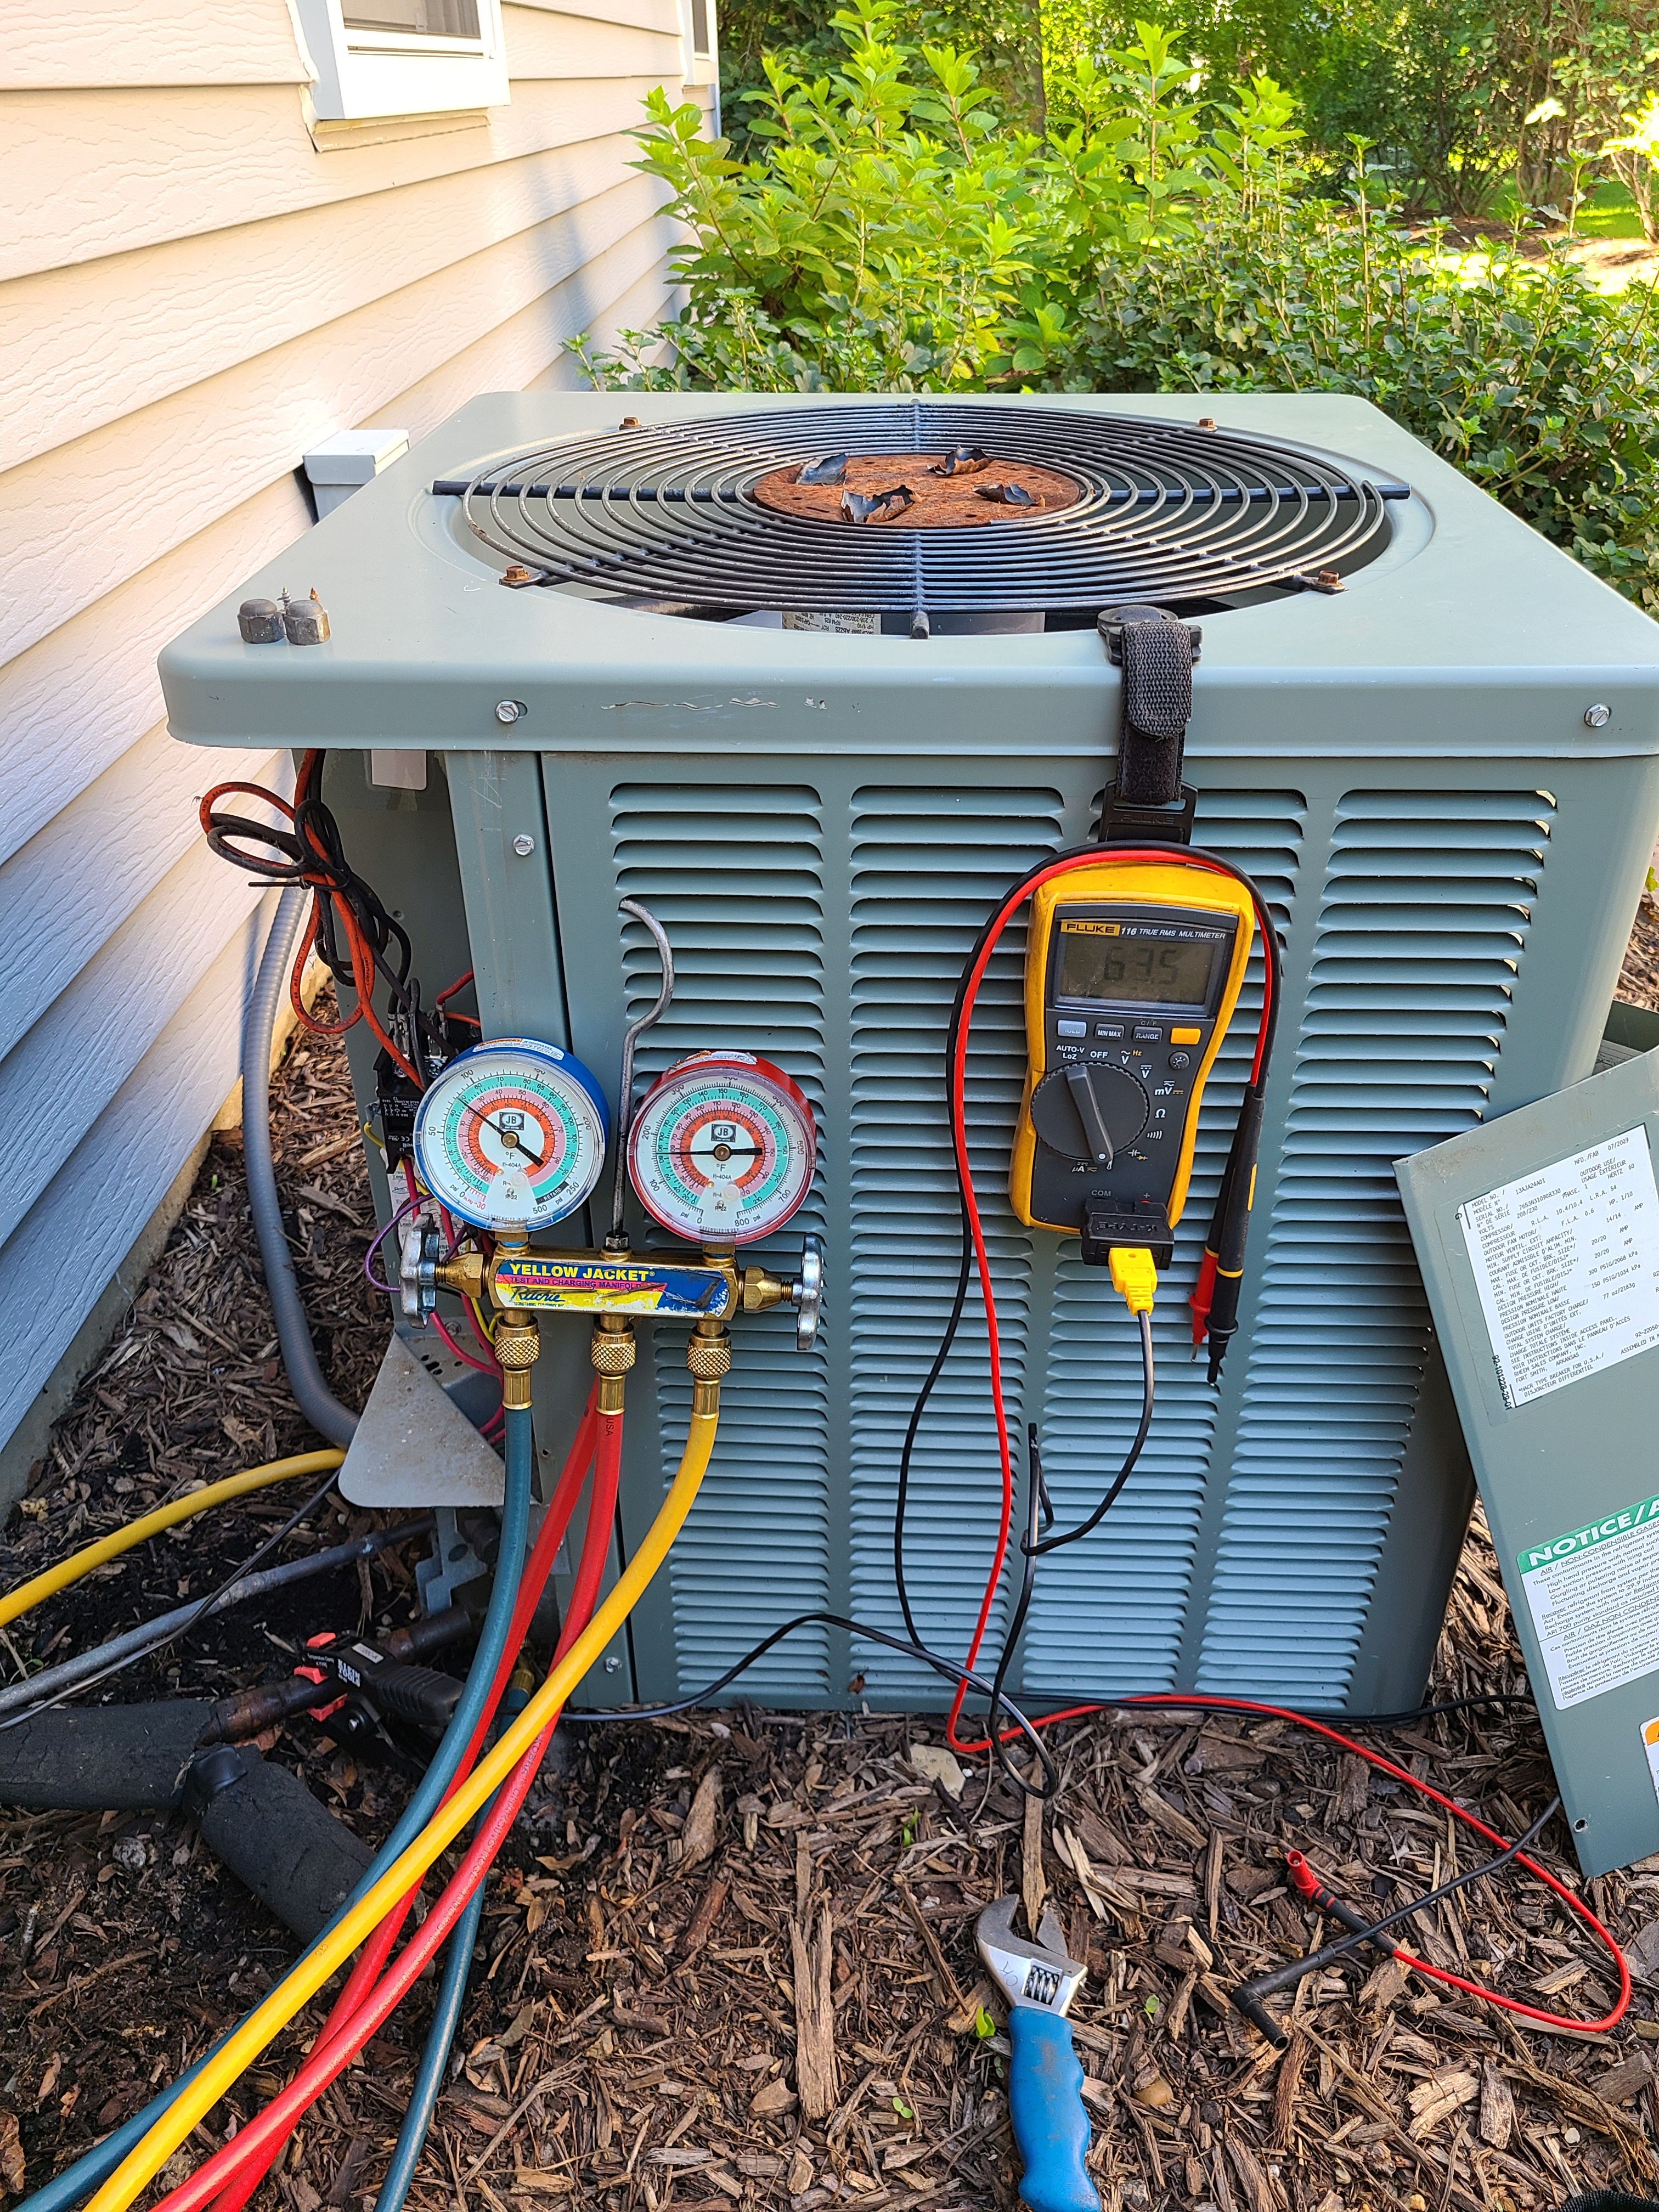 Rheem summer ac clean and check. System tuned up and ready for summer. Also made repairs to a faulty contactor.